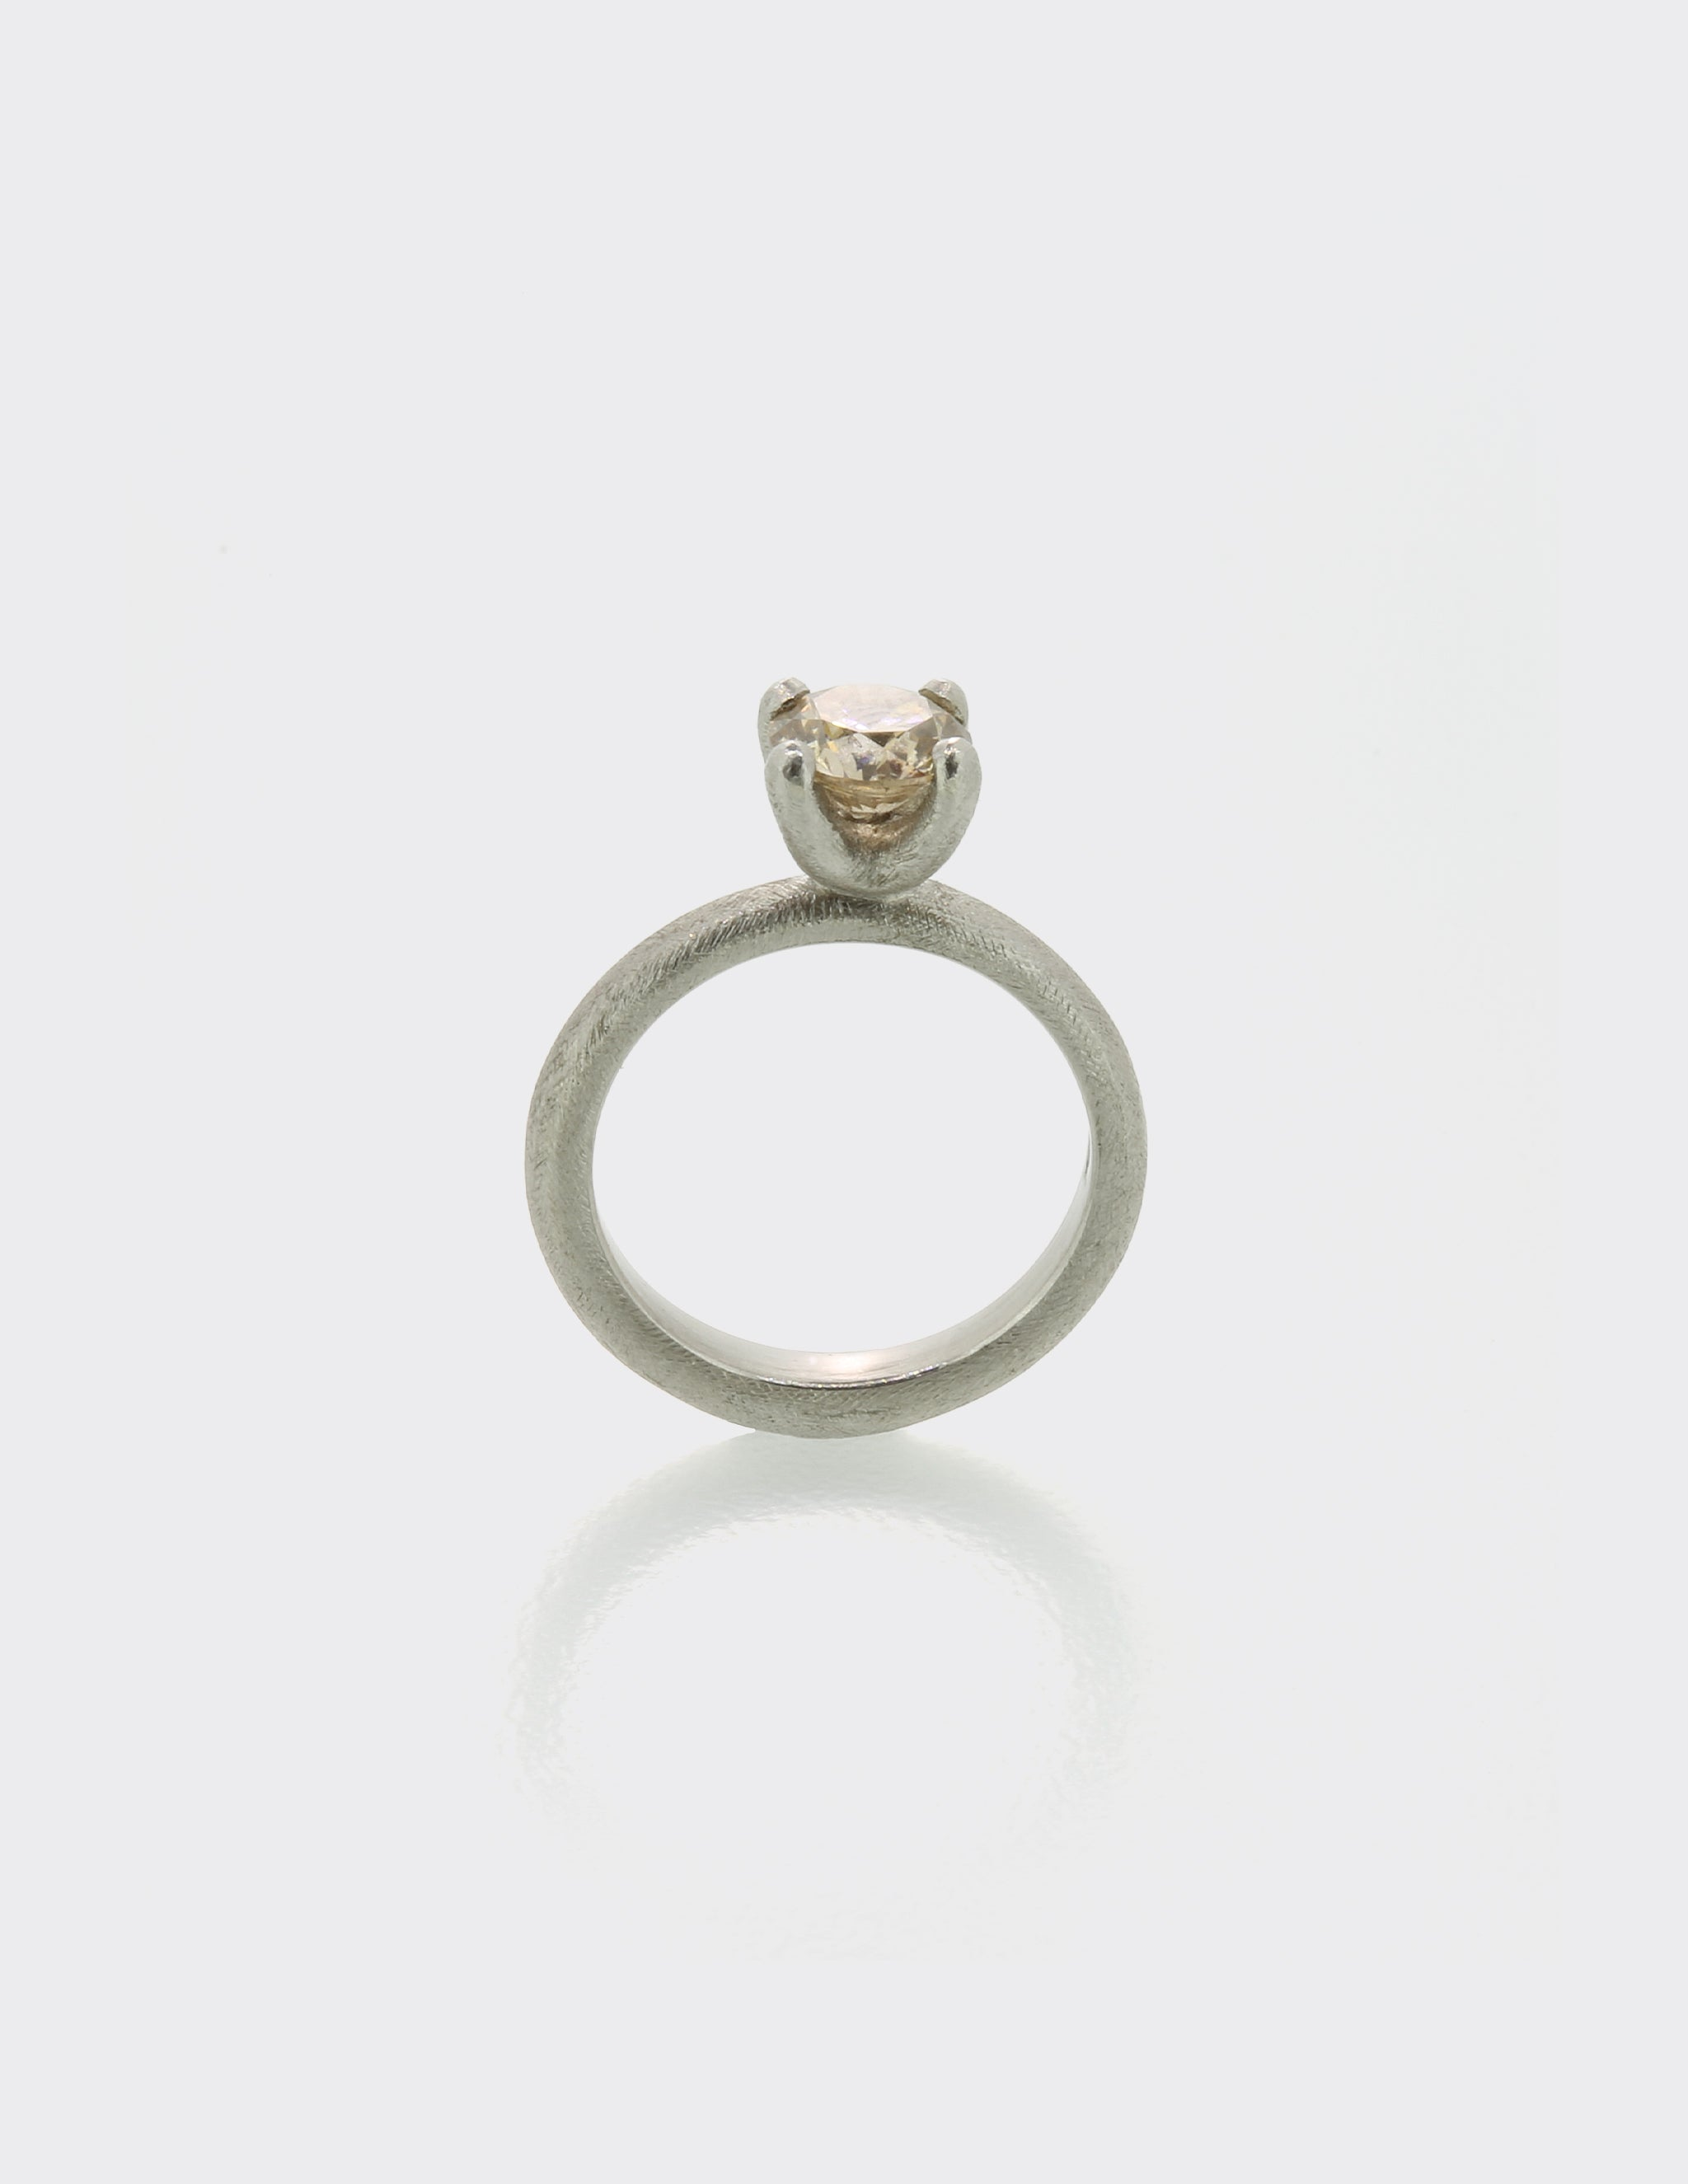 Platinum and pale brown diamond ring